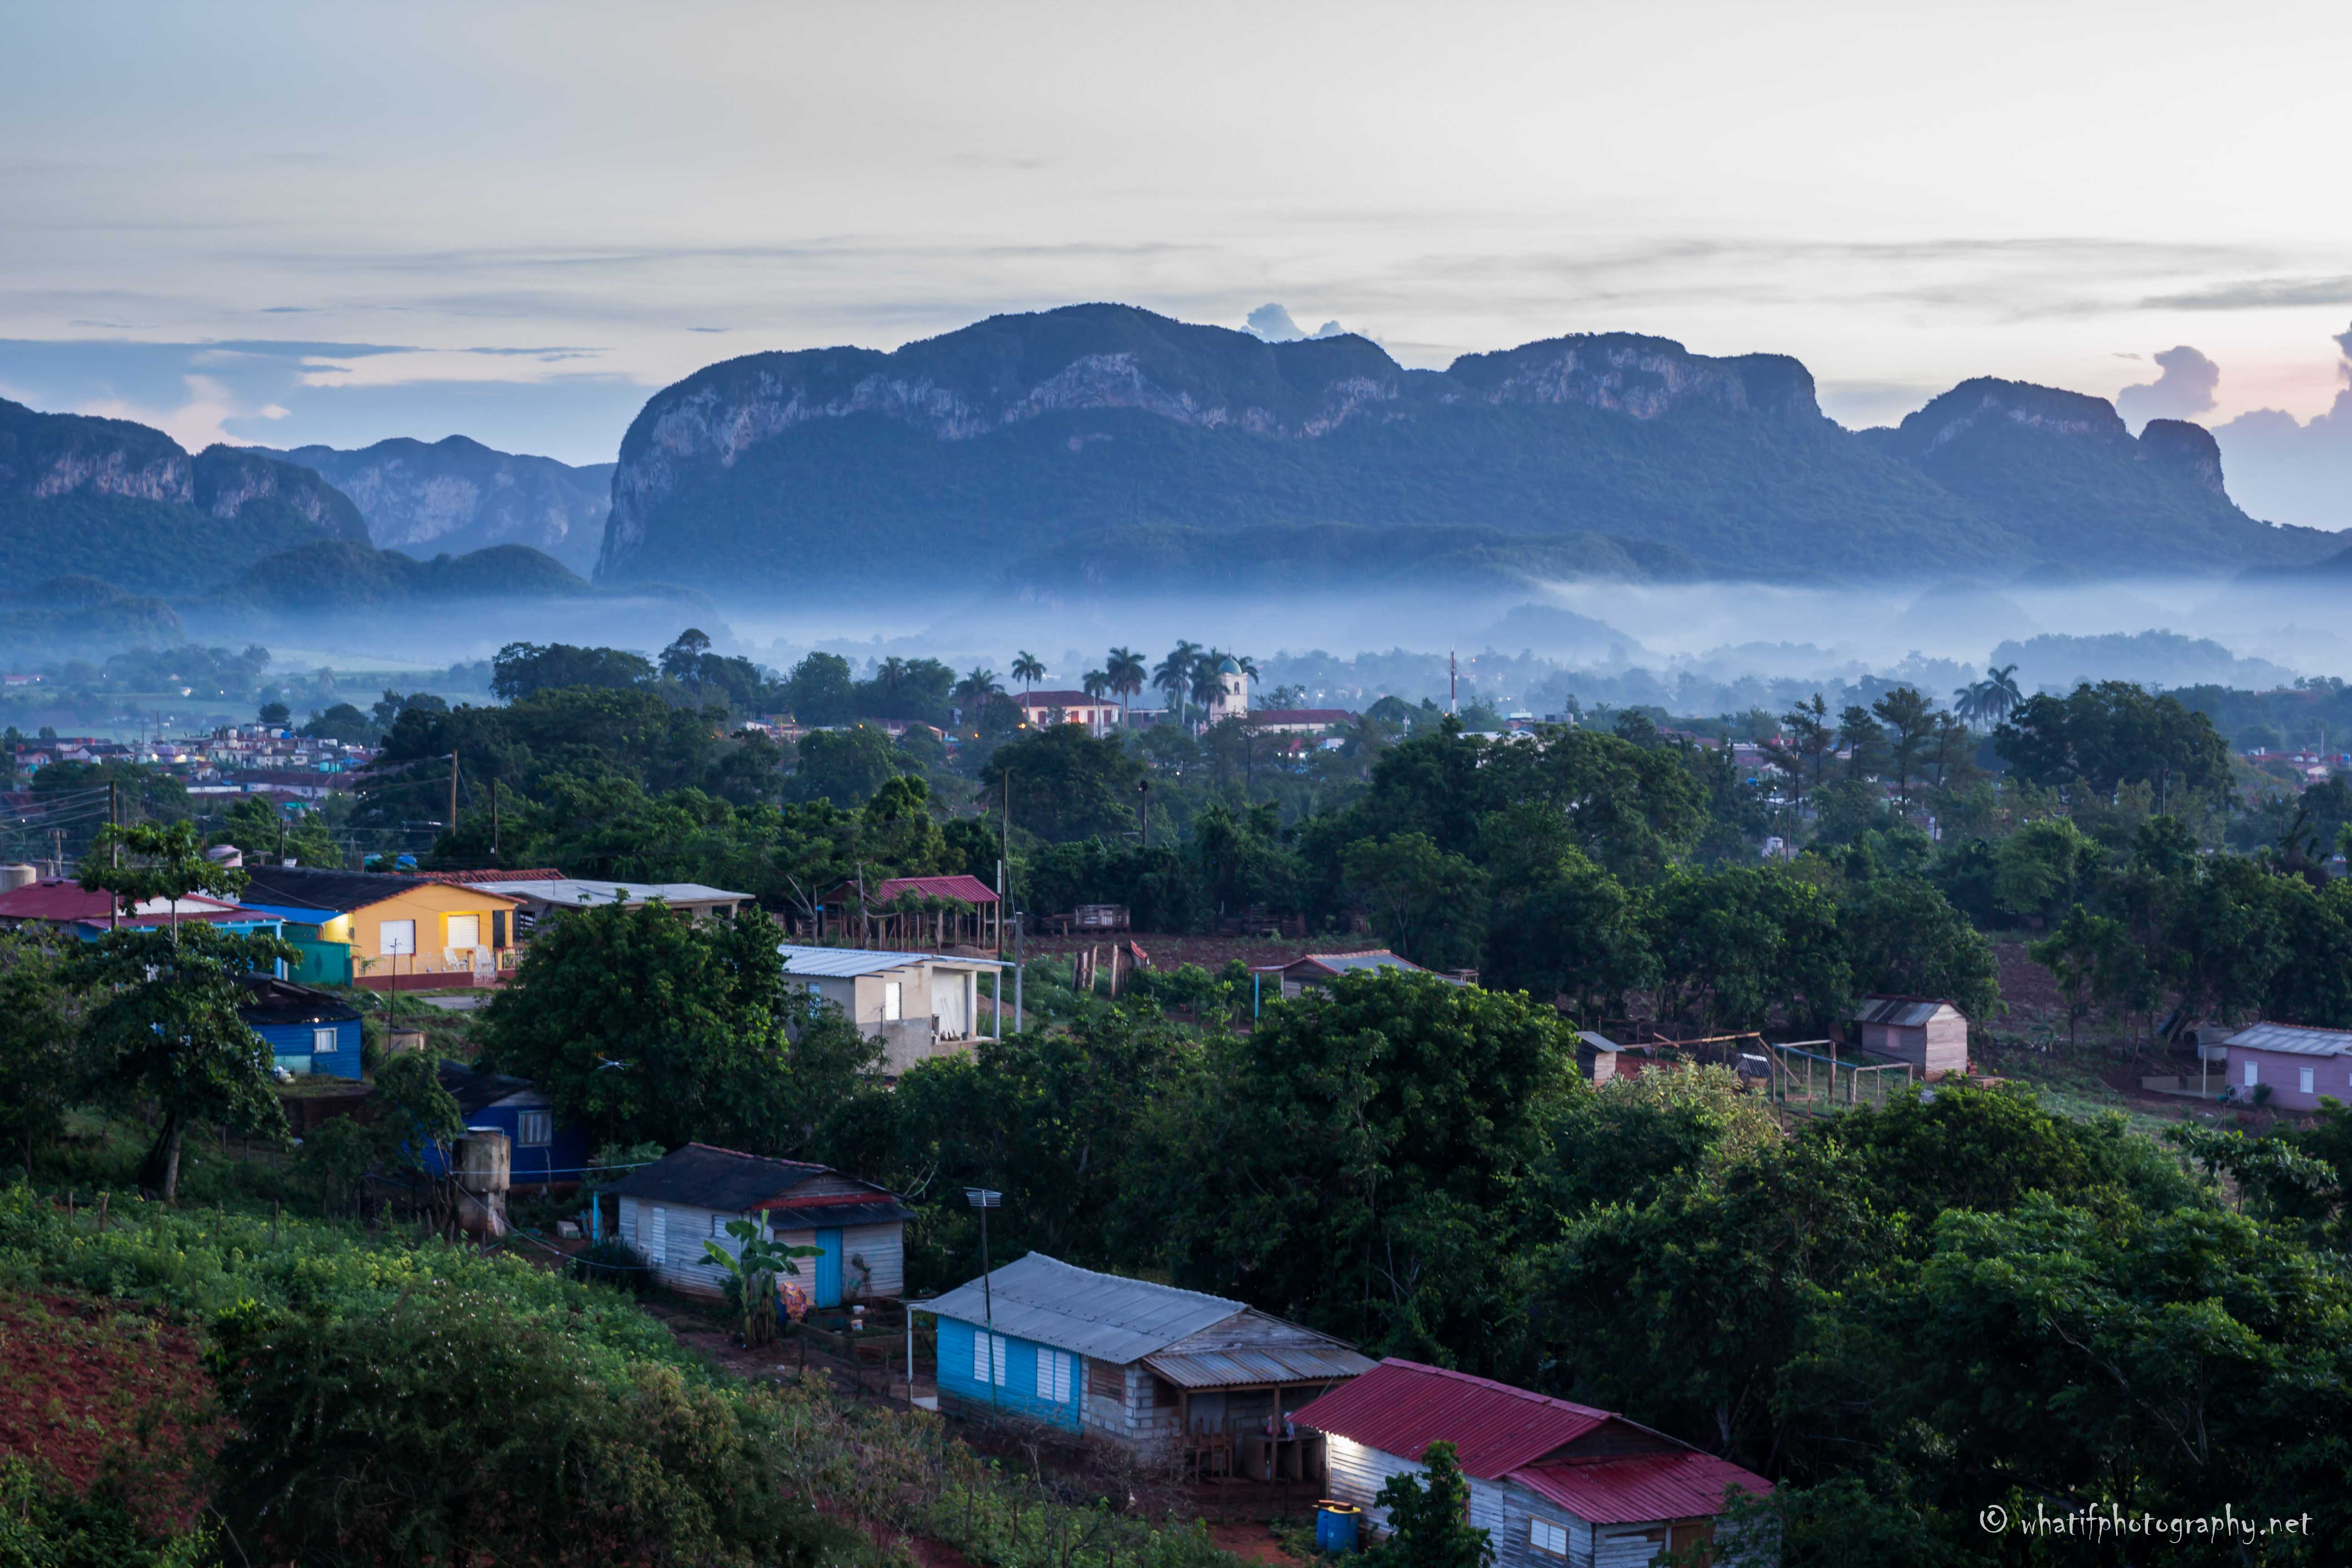 Early morning in Vinales